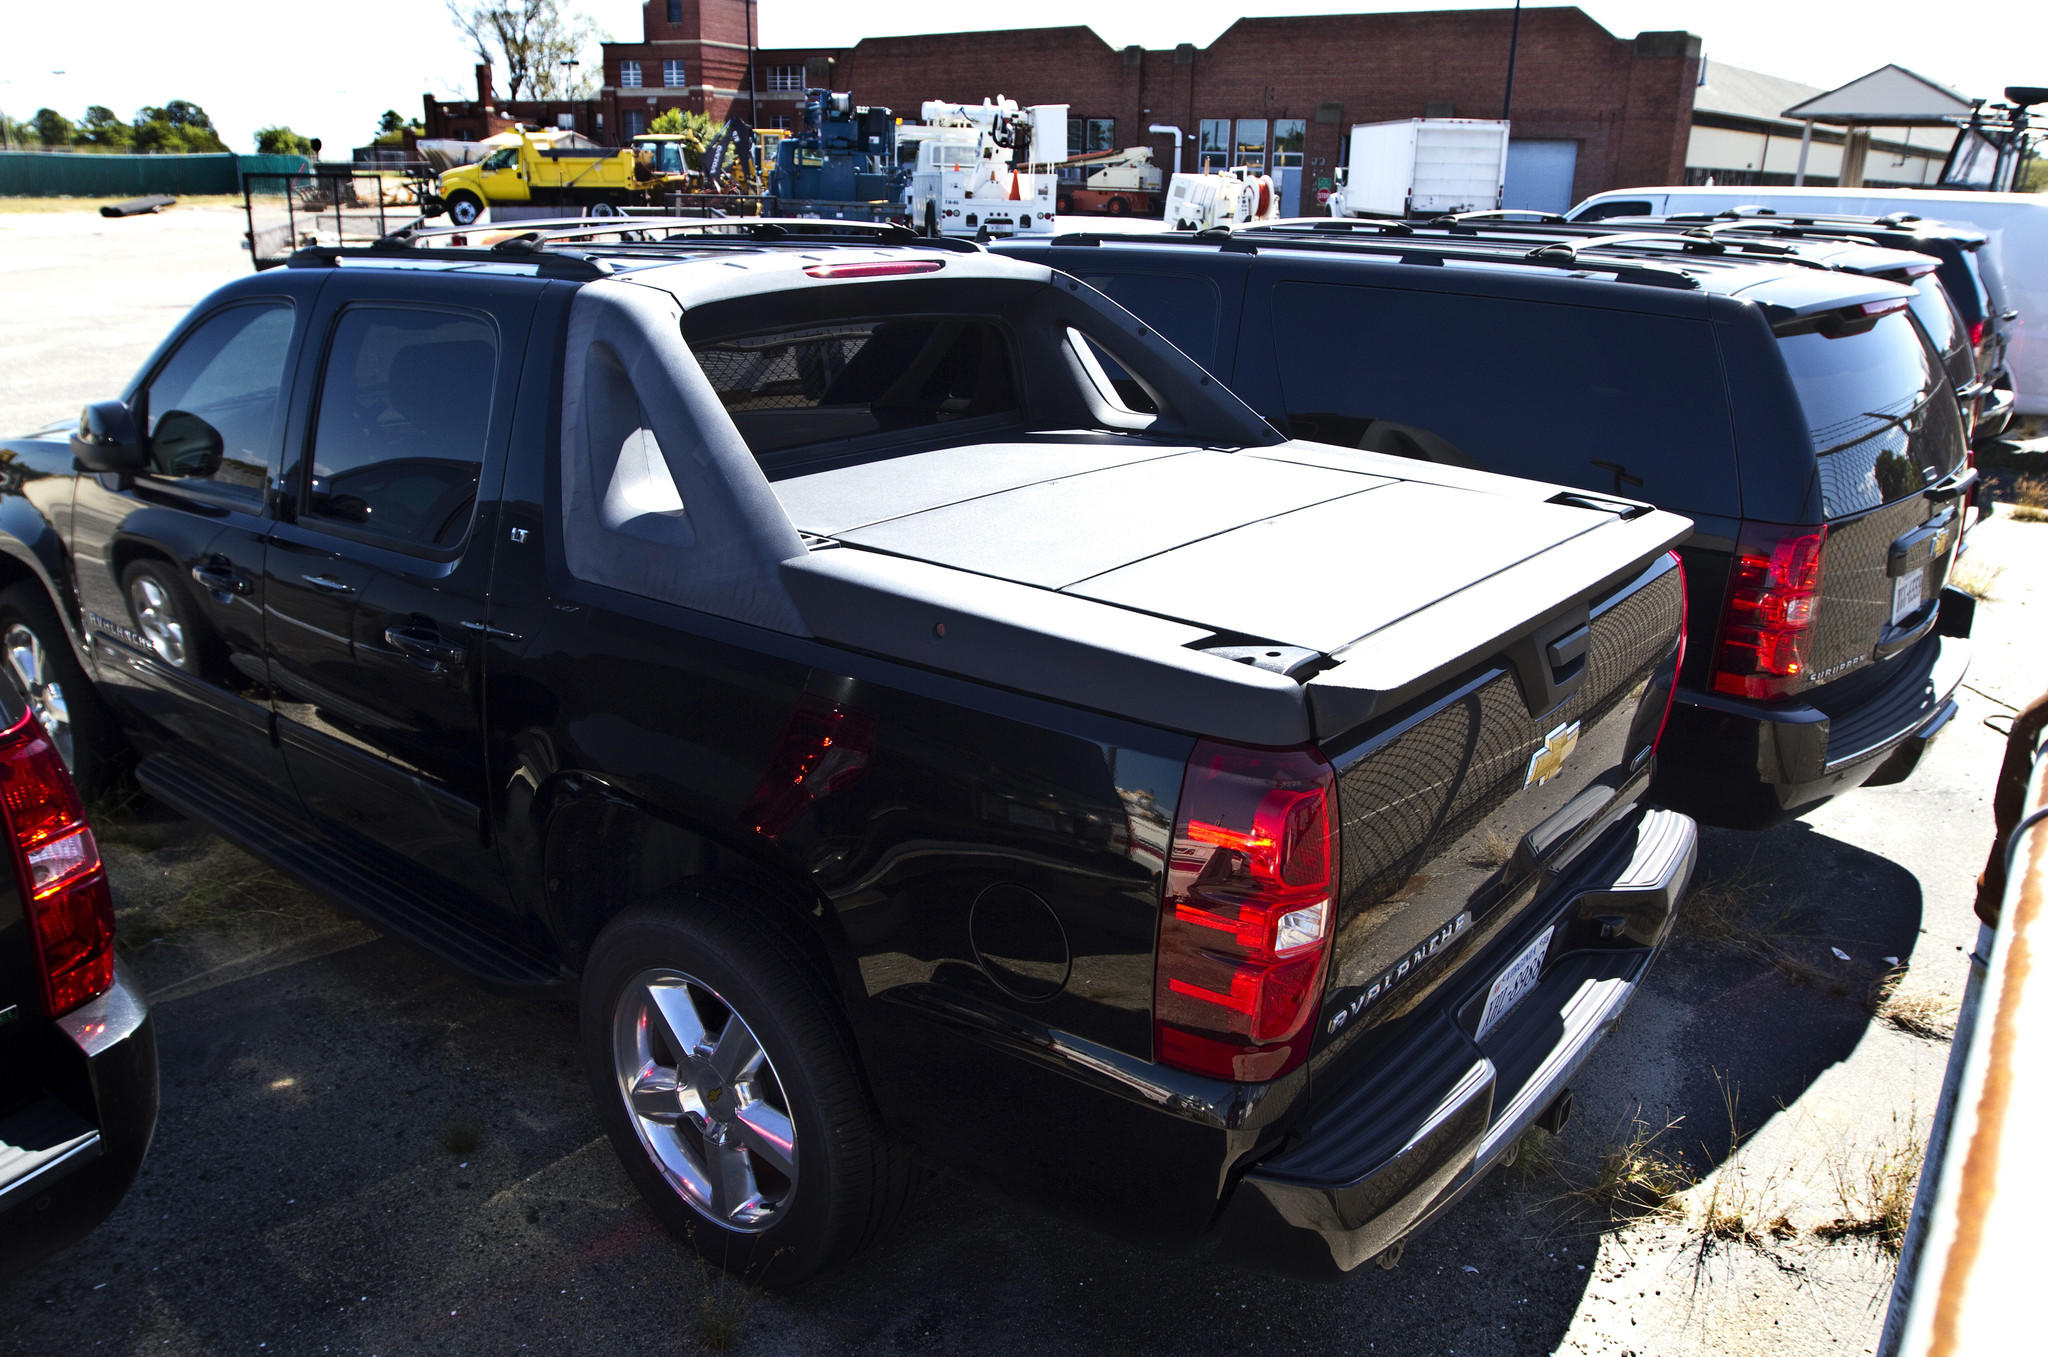 Cars and SUVs purchased by police with proceeds from the Hampton undercover cigarette sting have been parked at Fort Monroe for more than a year.